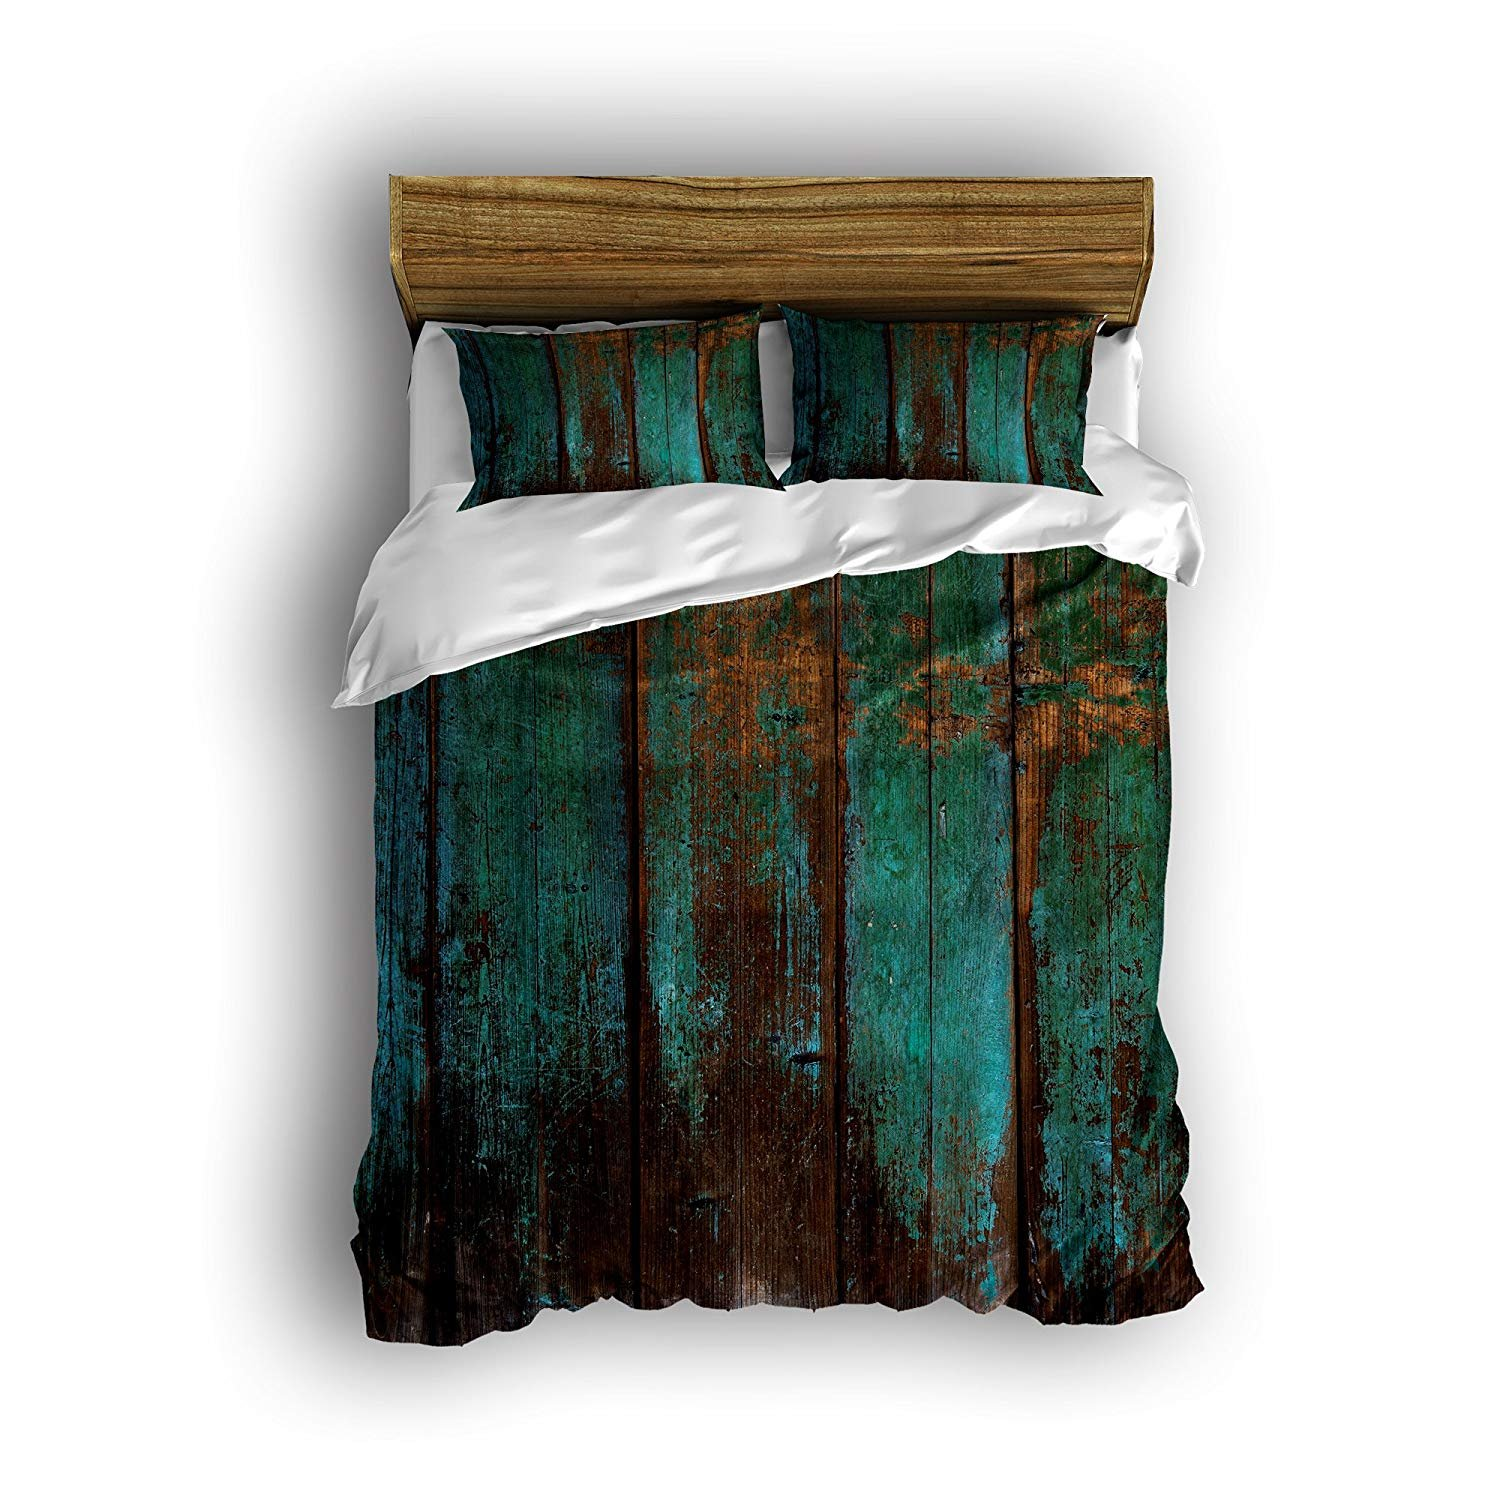 4 Piece Bedding Set Twin Size, Country Rustic Distressed Teal Green Barn Wood Fa,Duvet Cover Set Quilt Bedspread for Childrens/Kids/Teens/Adults